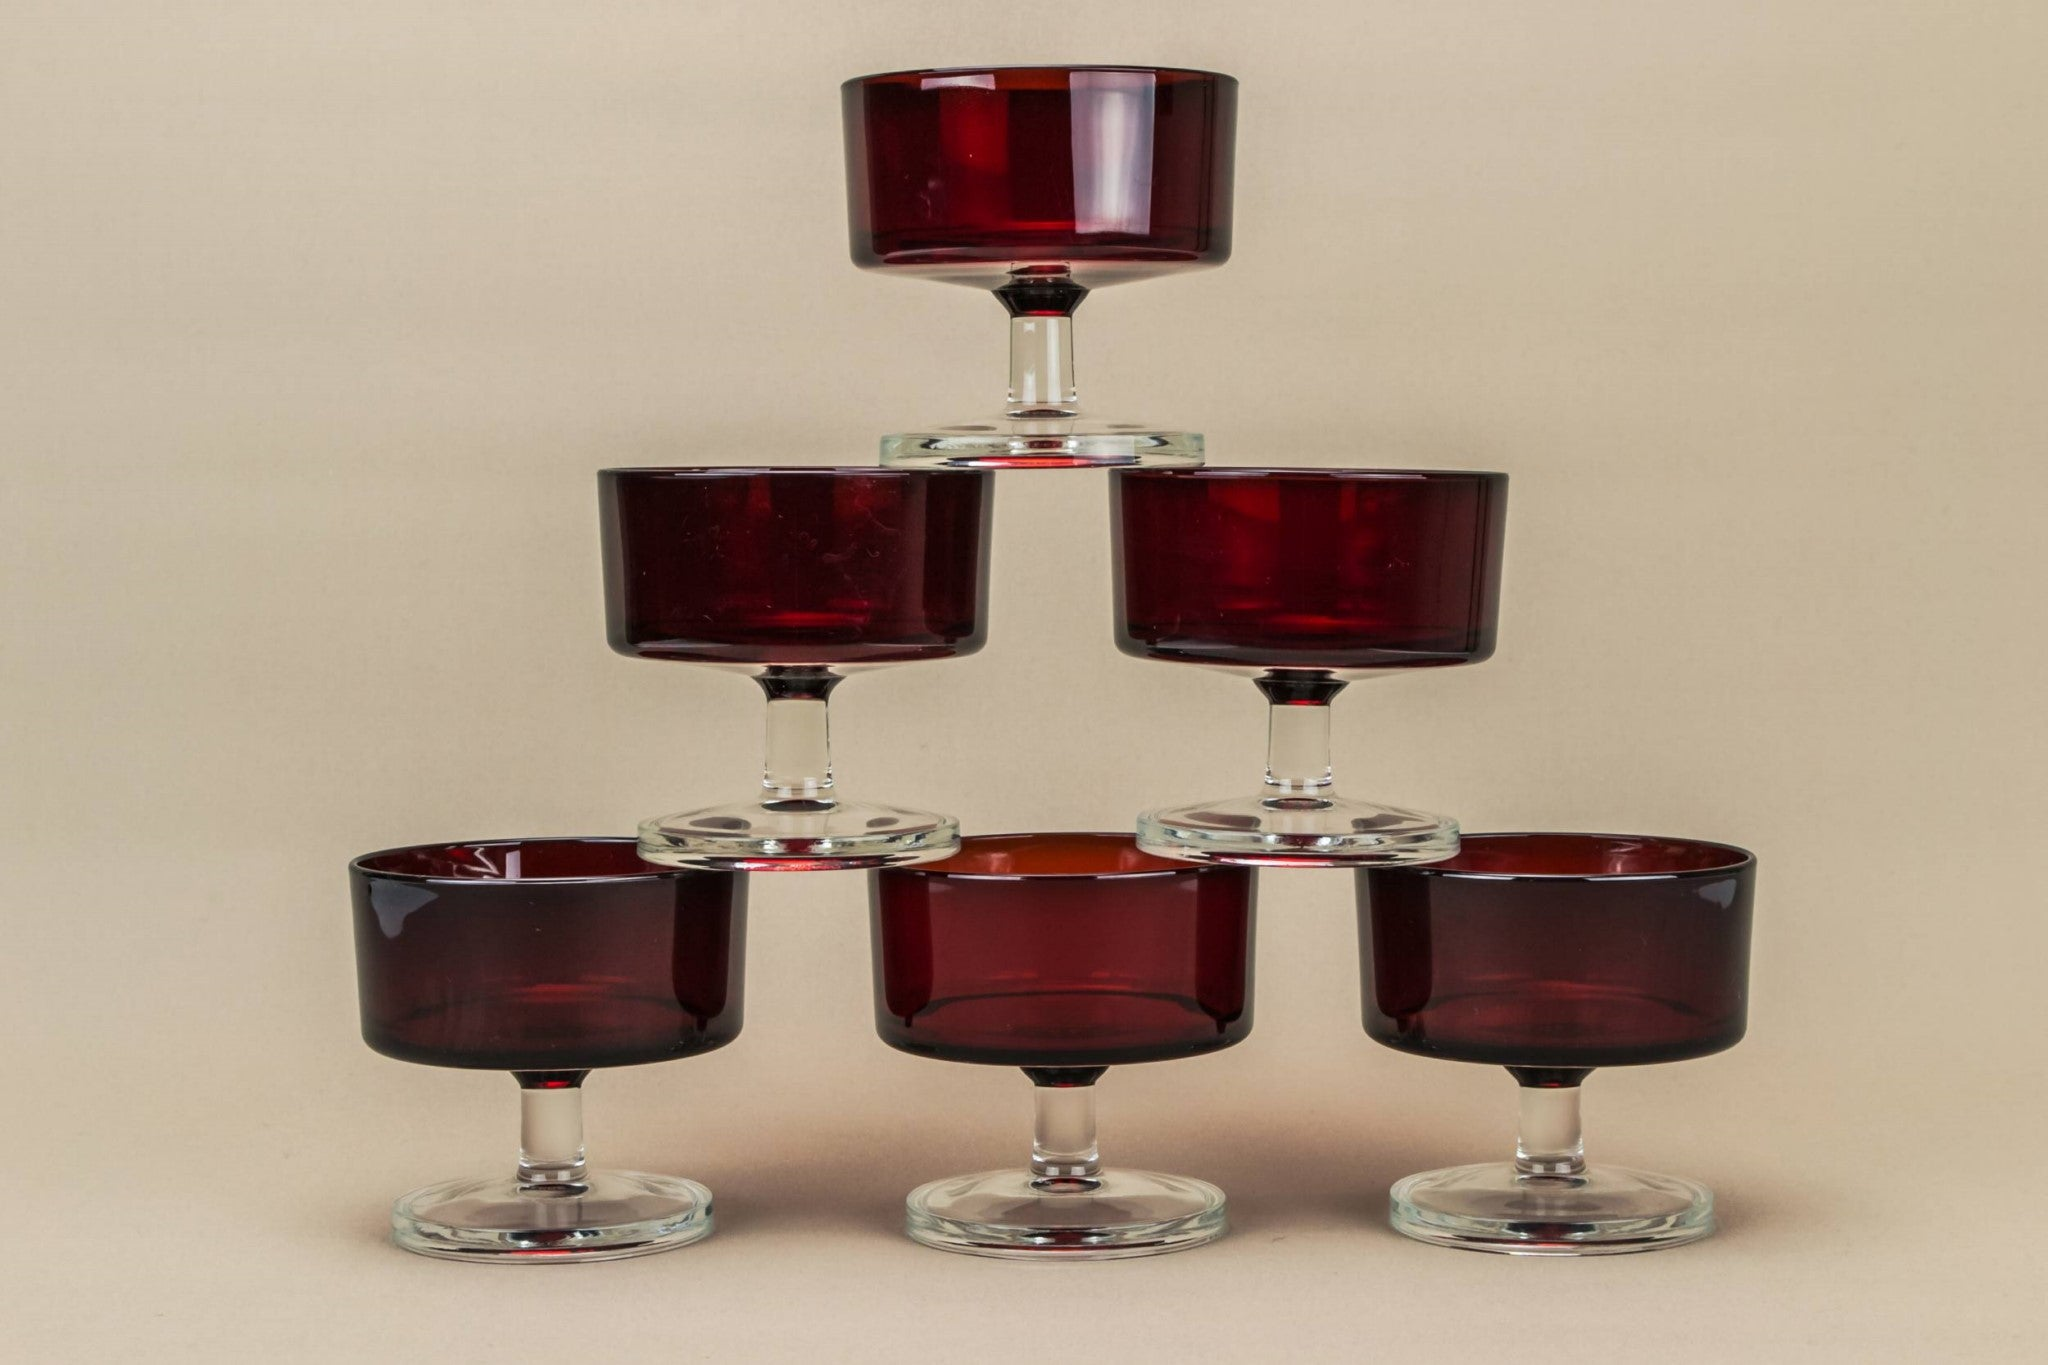 6 red wine glasses